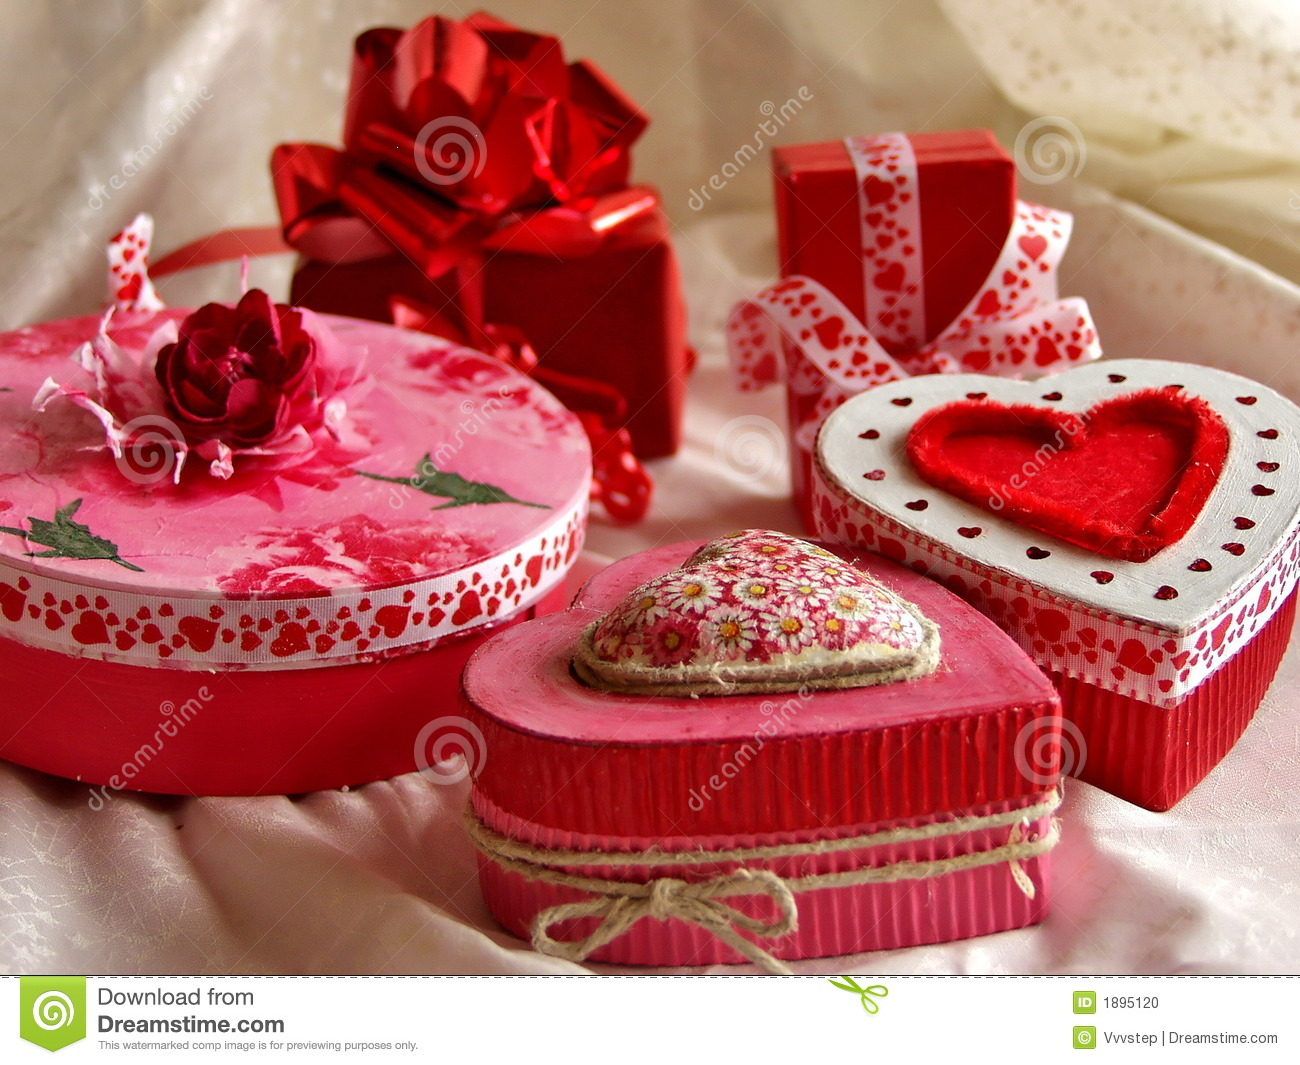 Valentine's Day Gift Boxes Stock Photo - Image: 1895120